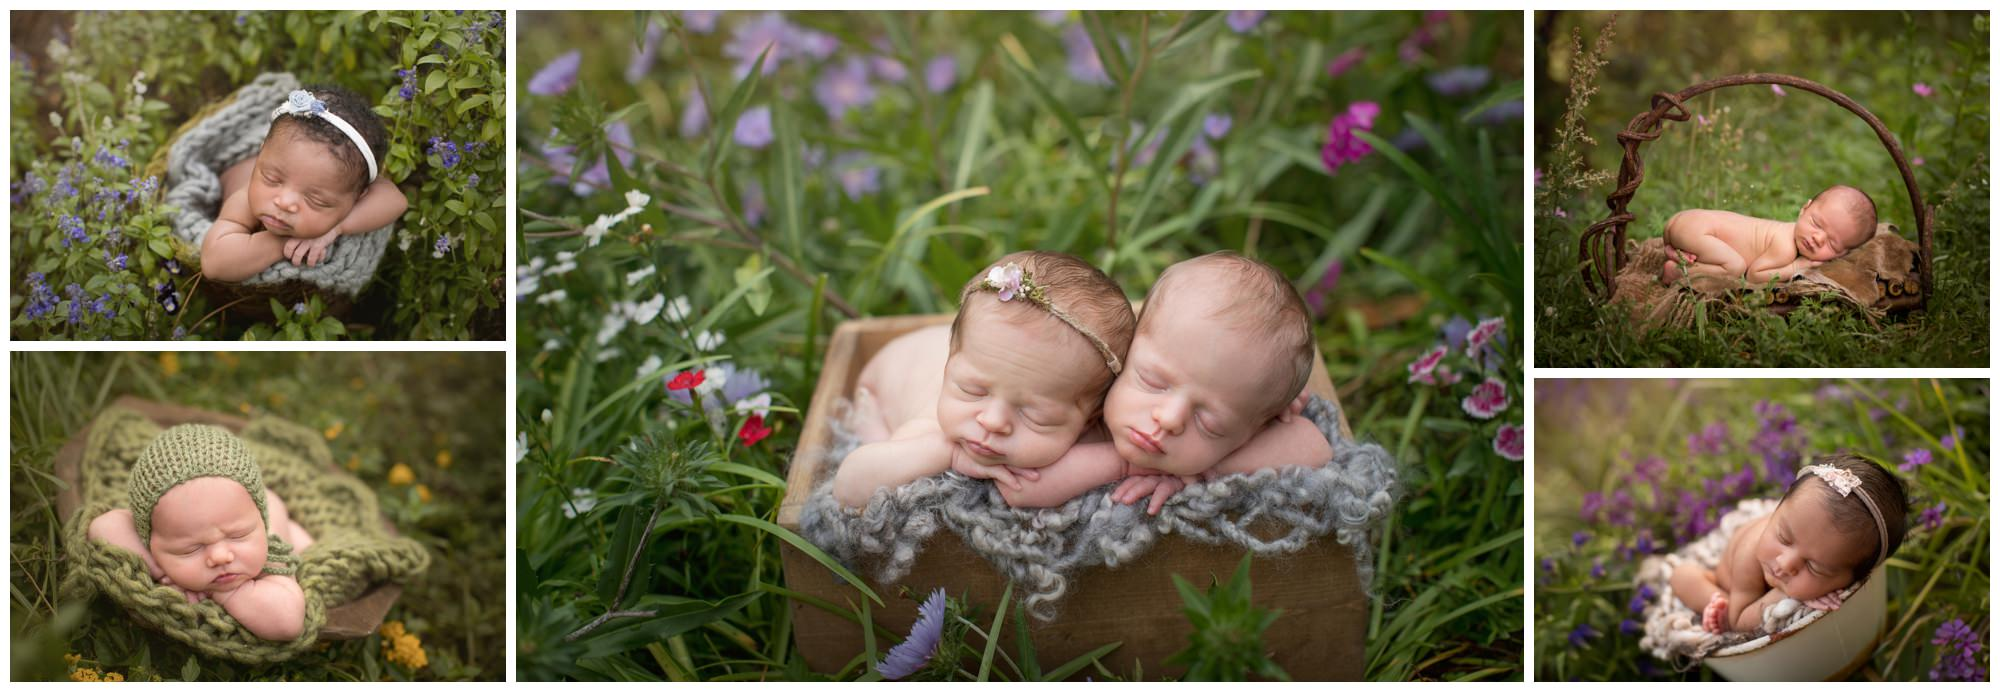 newborns photographed outside in Destin FL by Nicole Everson Photography